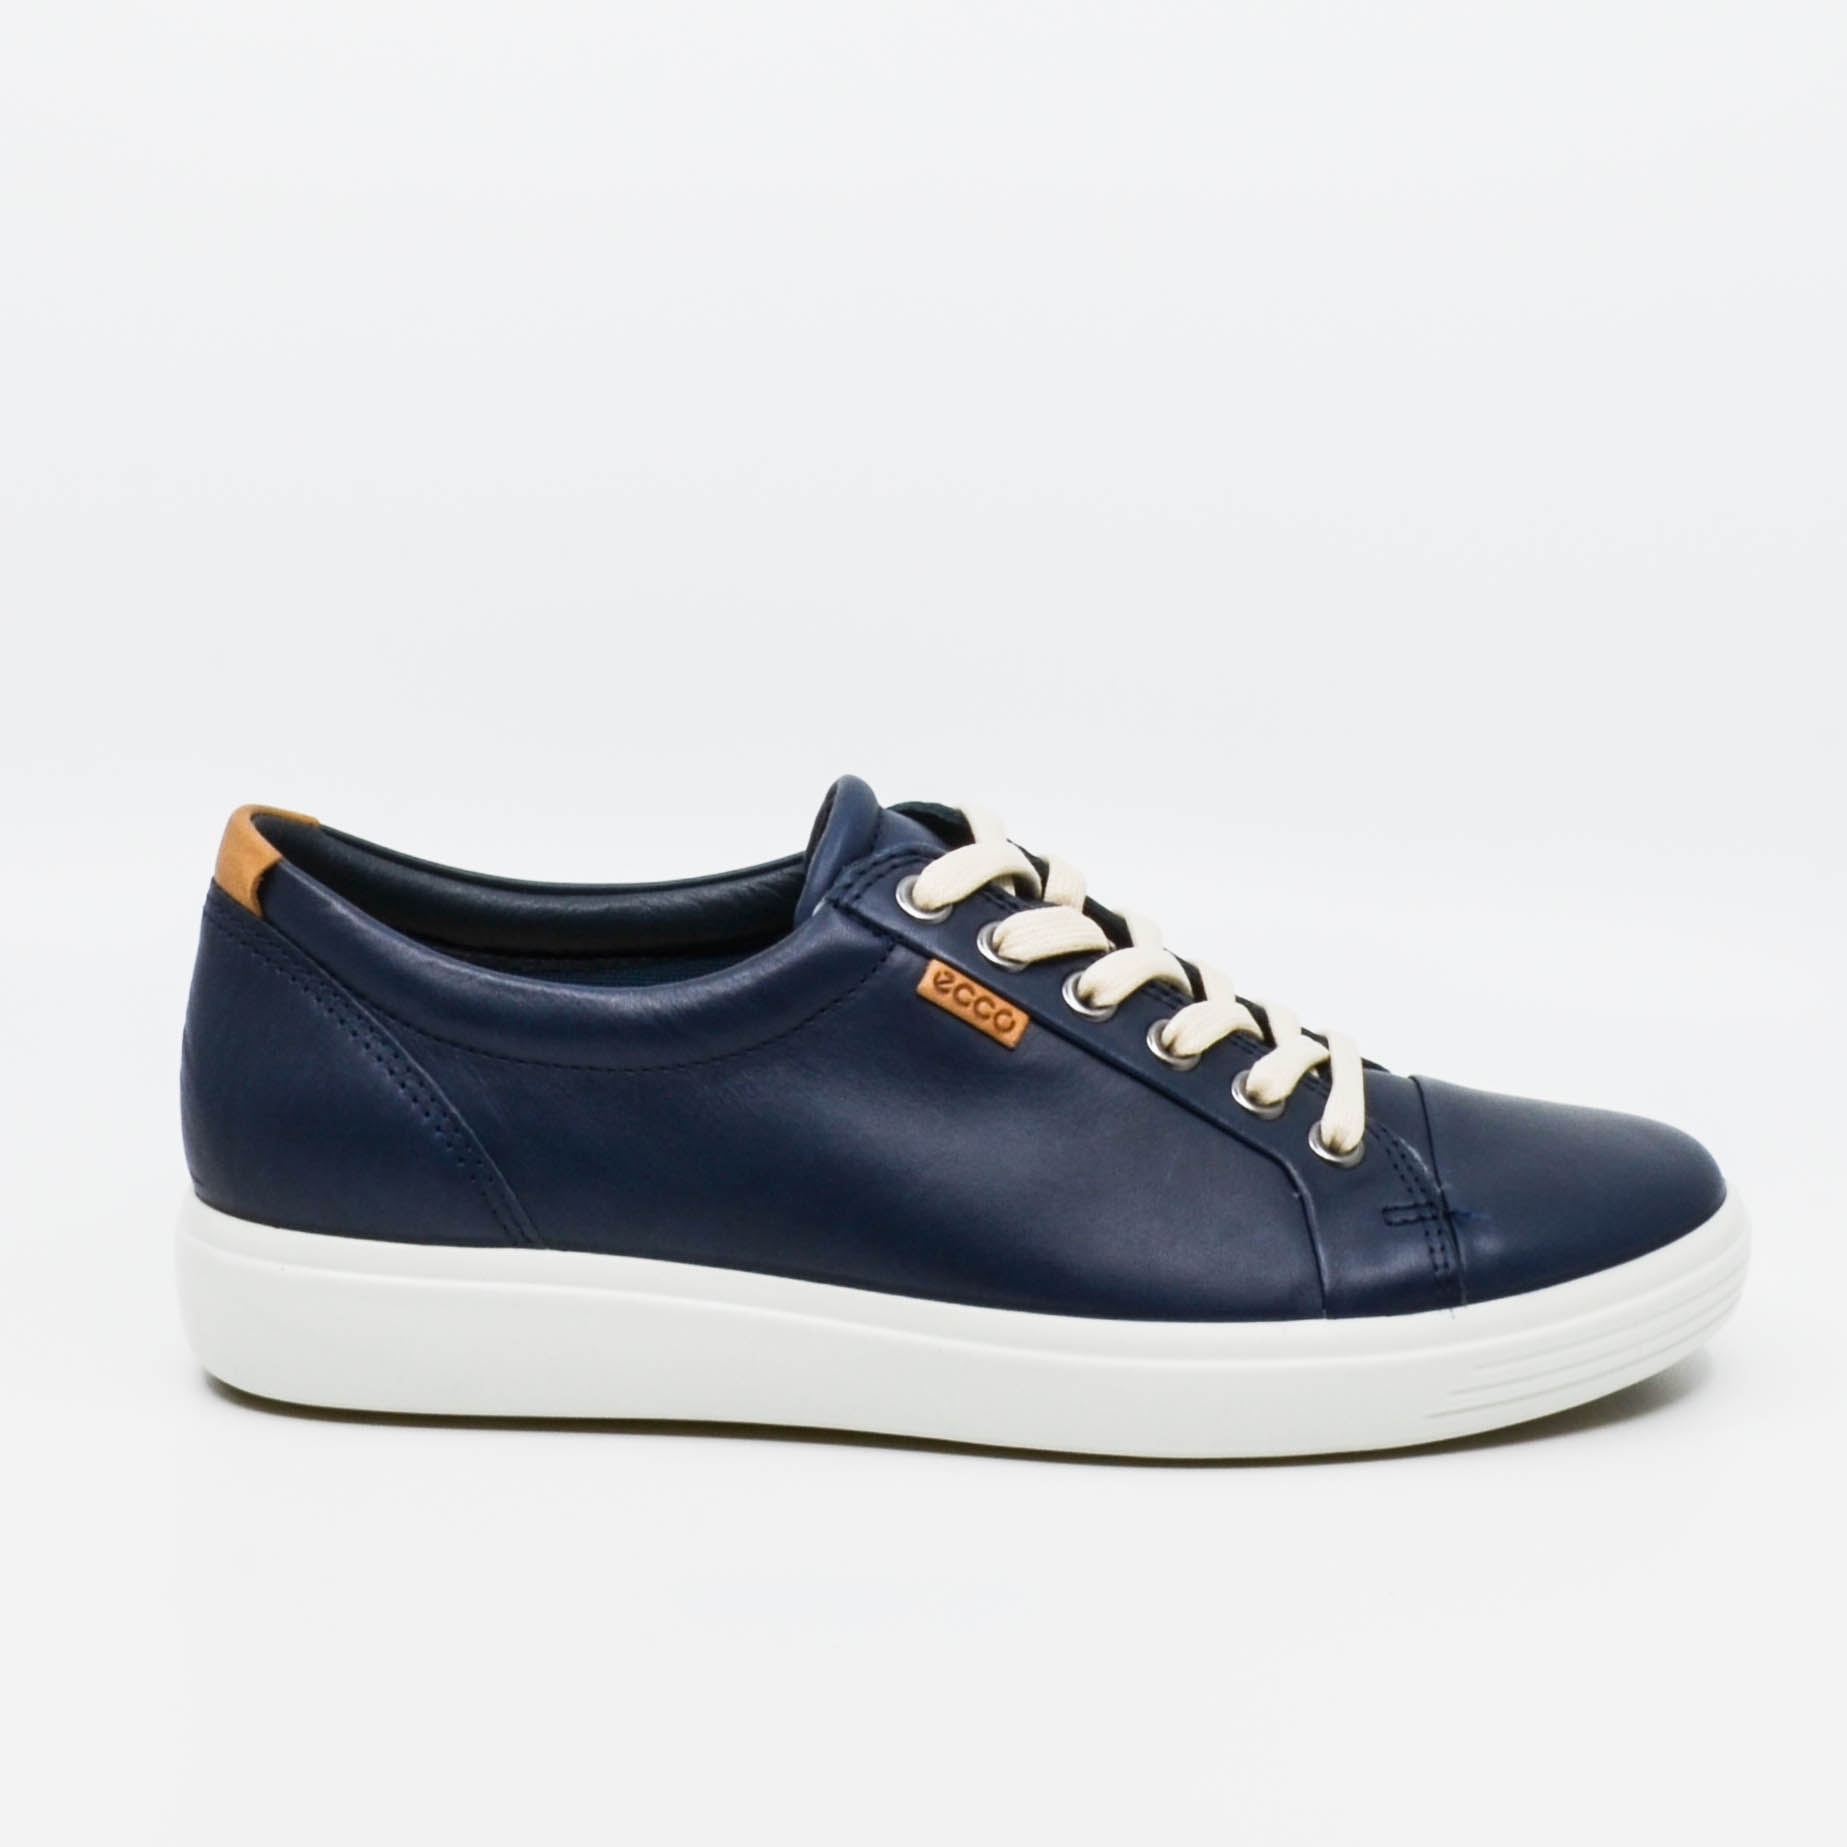 3dd10fe127e Ecco Soft 7 navy - Women's Footwear Online | European Brands | The House of  Shoes